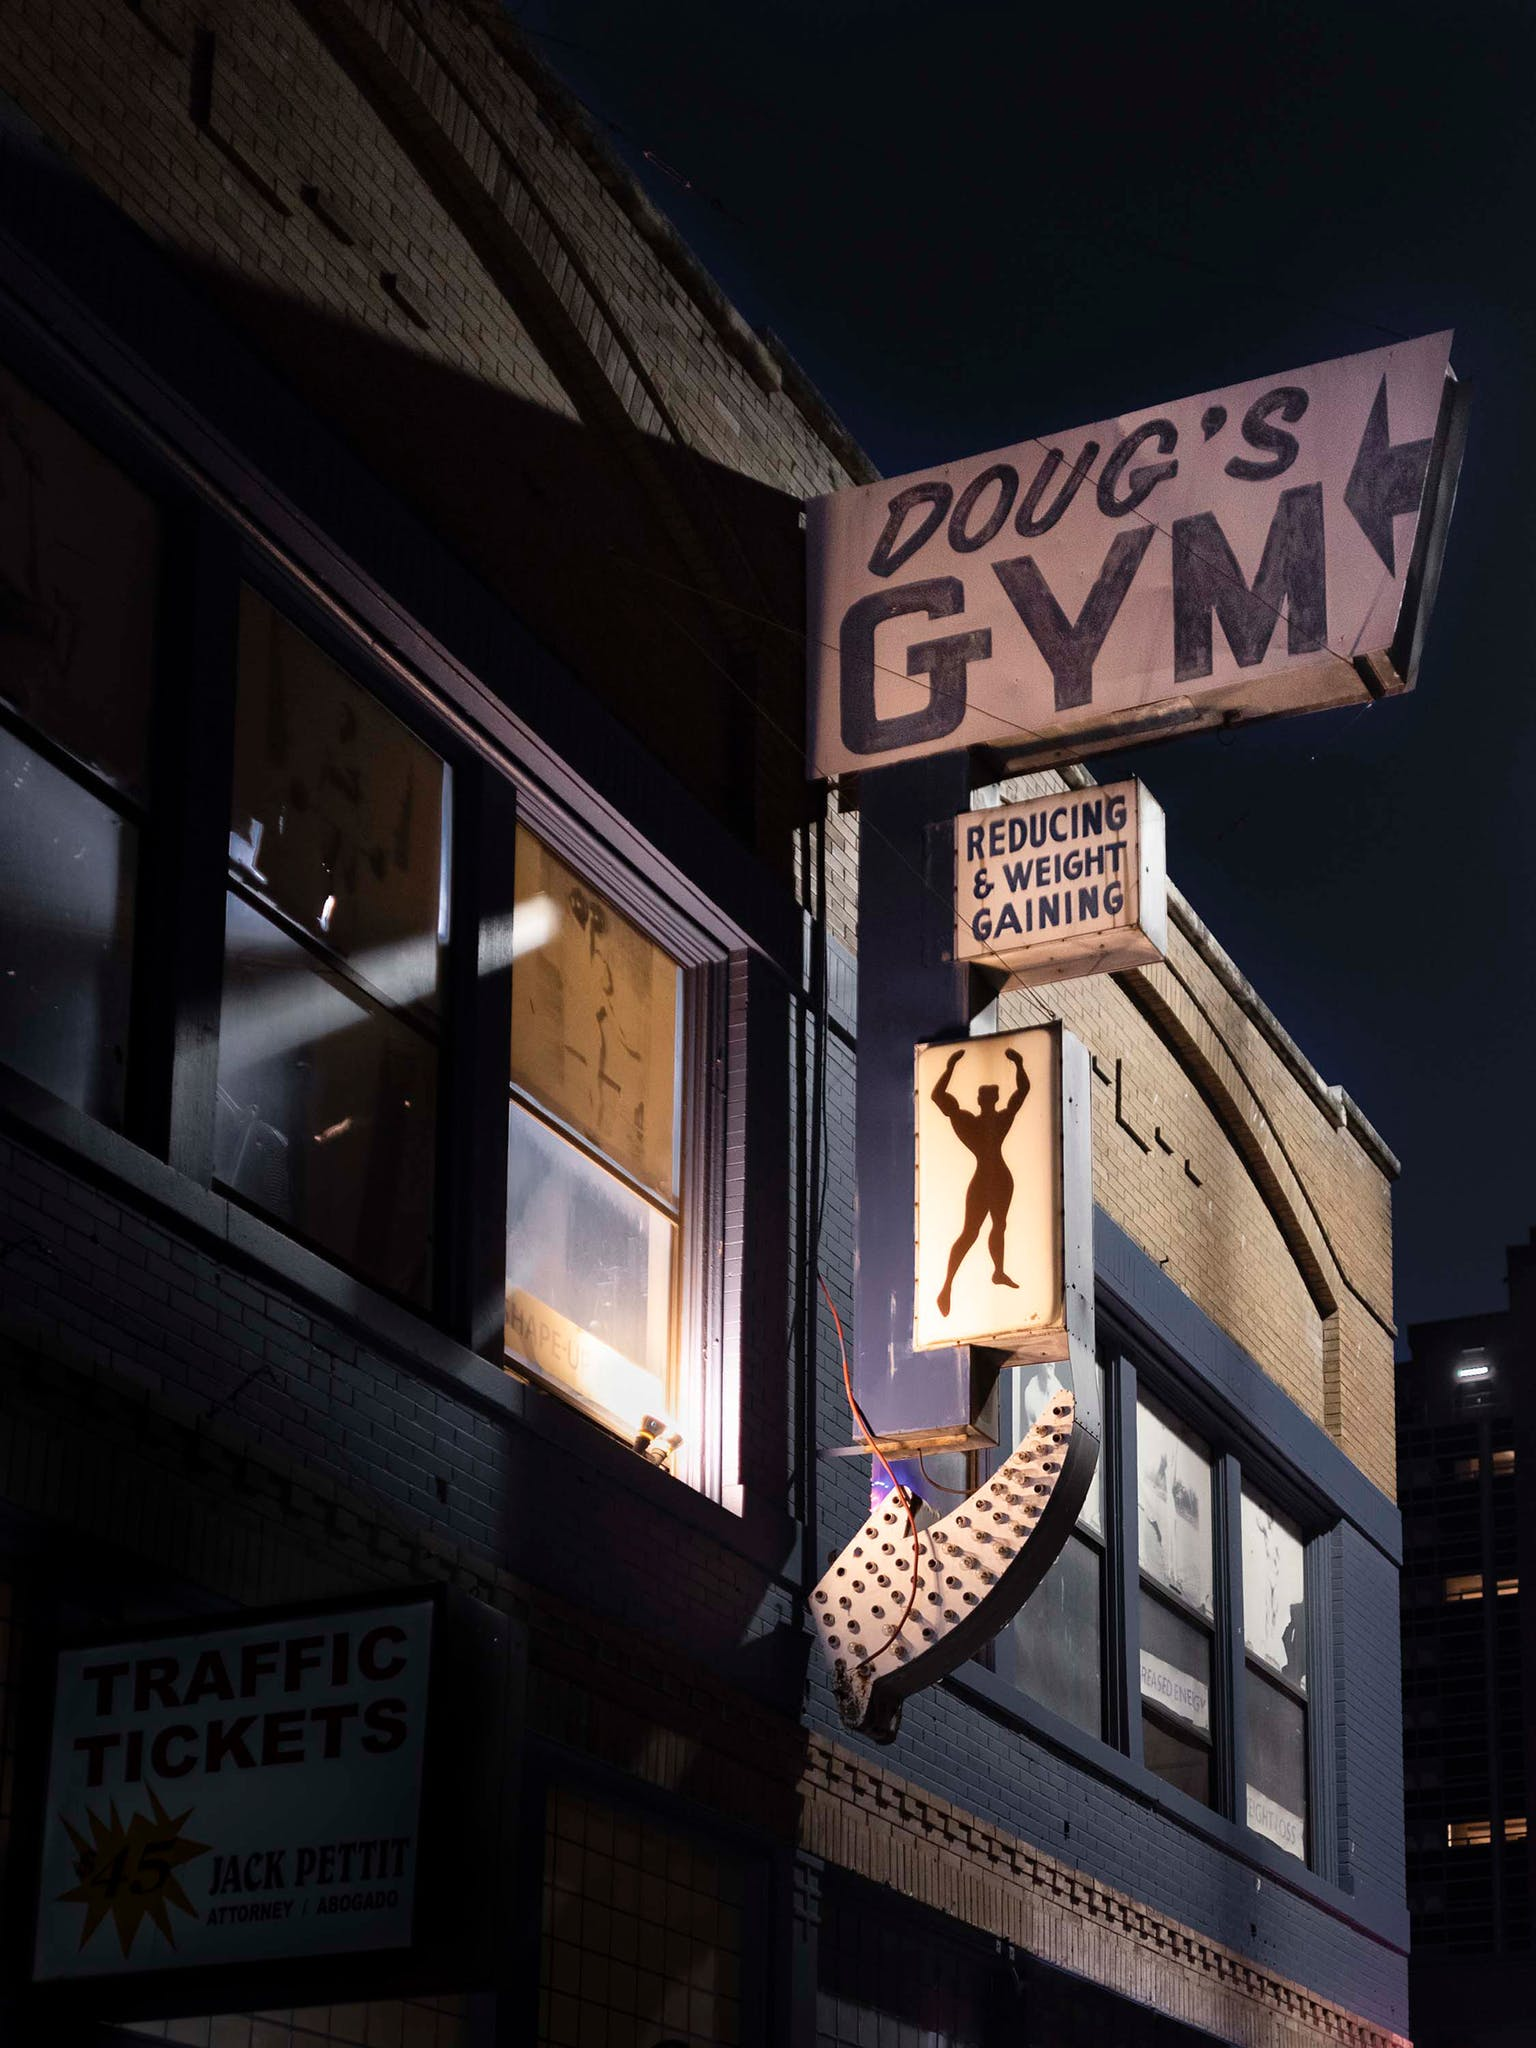 """Doug's Gym was recognized, if at all, by its vintage sign with the out-of-step promise of """"reducing & weight gaining."""" It was this sign, in fact, that originally caught Diamond's eye. But when he first walked up the gym's sagging steps, the last thing on his mind was building muscle and losing weight. The truth is, Diamond was feeling a little lost. He'd recently retired from a career as a doctor specializing in interventional radiology and was, in his words, """"still coming to grips"""" with thirty years of seeing people in terrible and often incurable situations. The gym's peeling paint and dark corners spoke to him—about years passing by, about mortality, and our ability to change. And so three times a week for six months he photographed a gym tinged with cigar smoke and sheltered from time."""